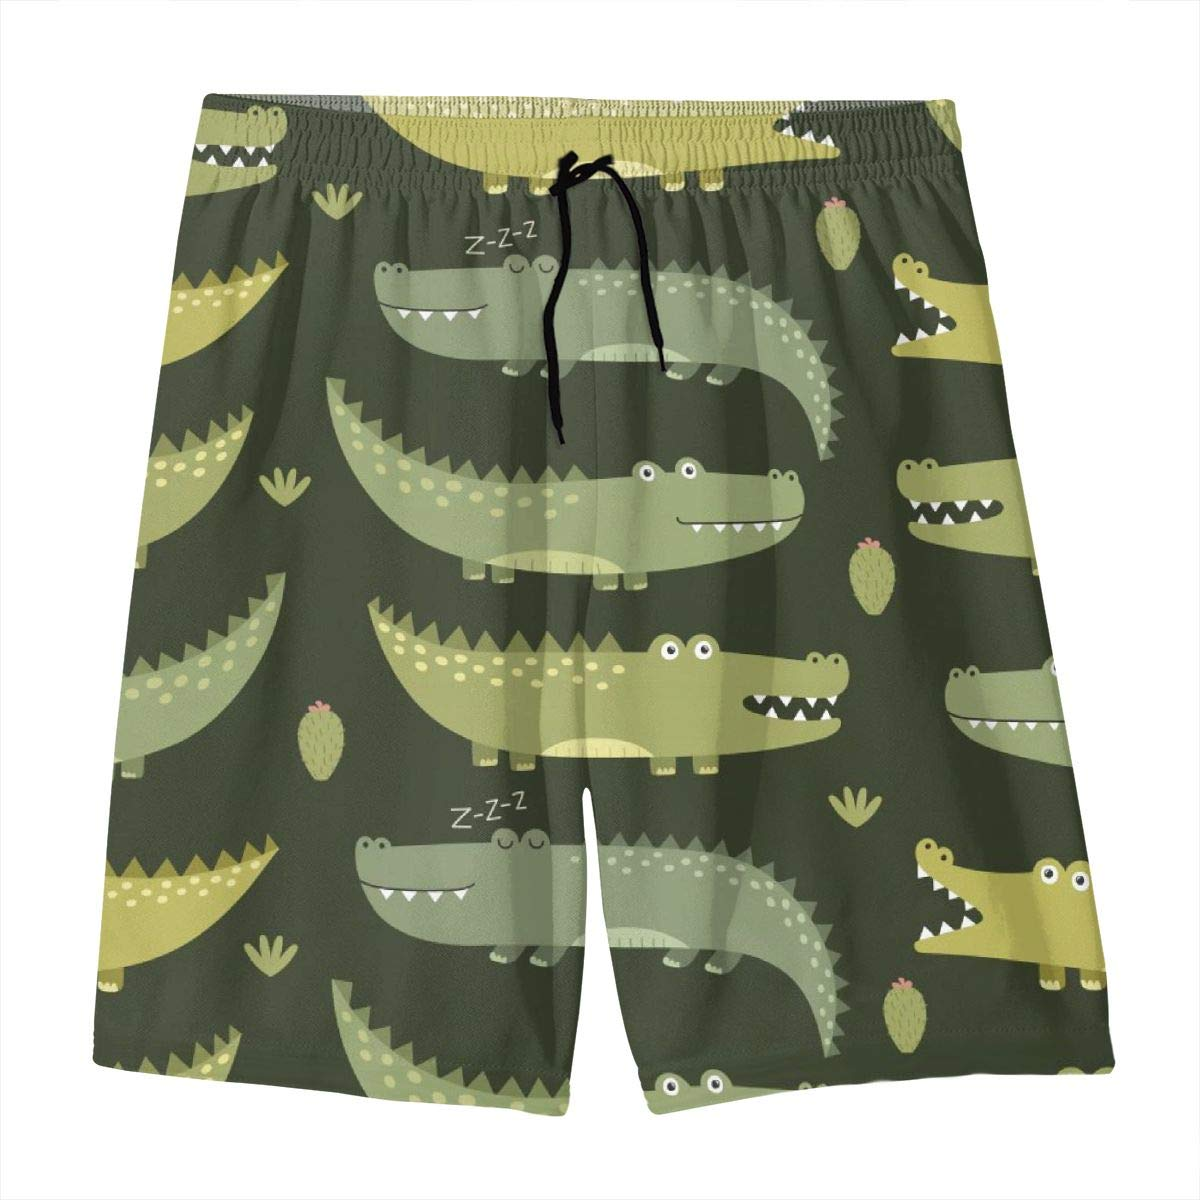 Depuge Cartoon Alligator Boy Swim Trunks Summer Quick Dry Beach Shorts with Pocket